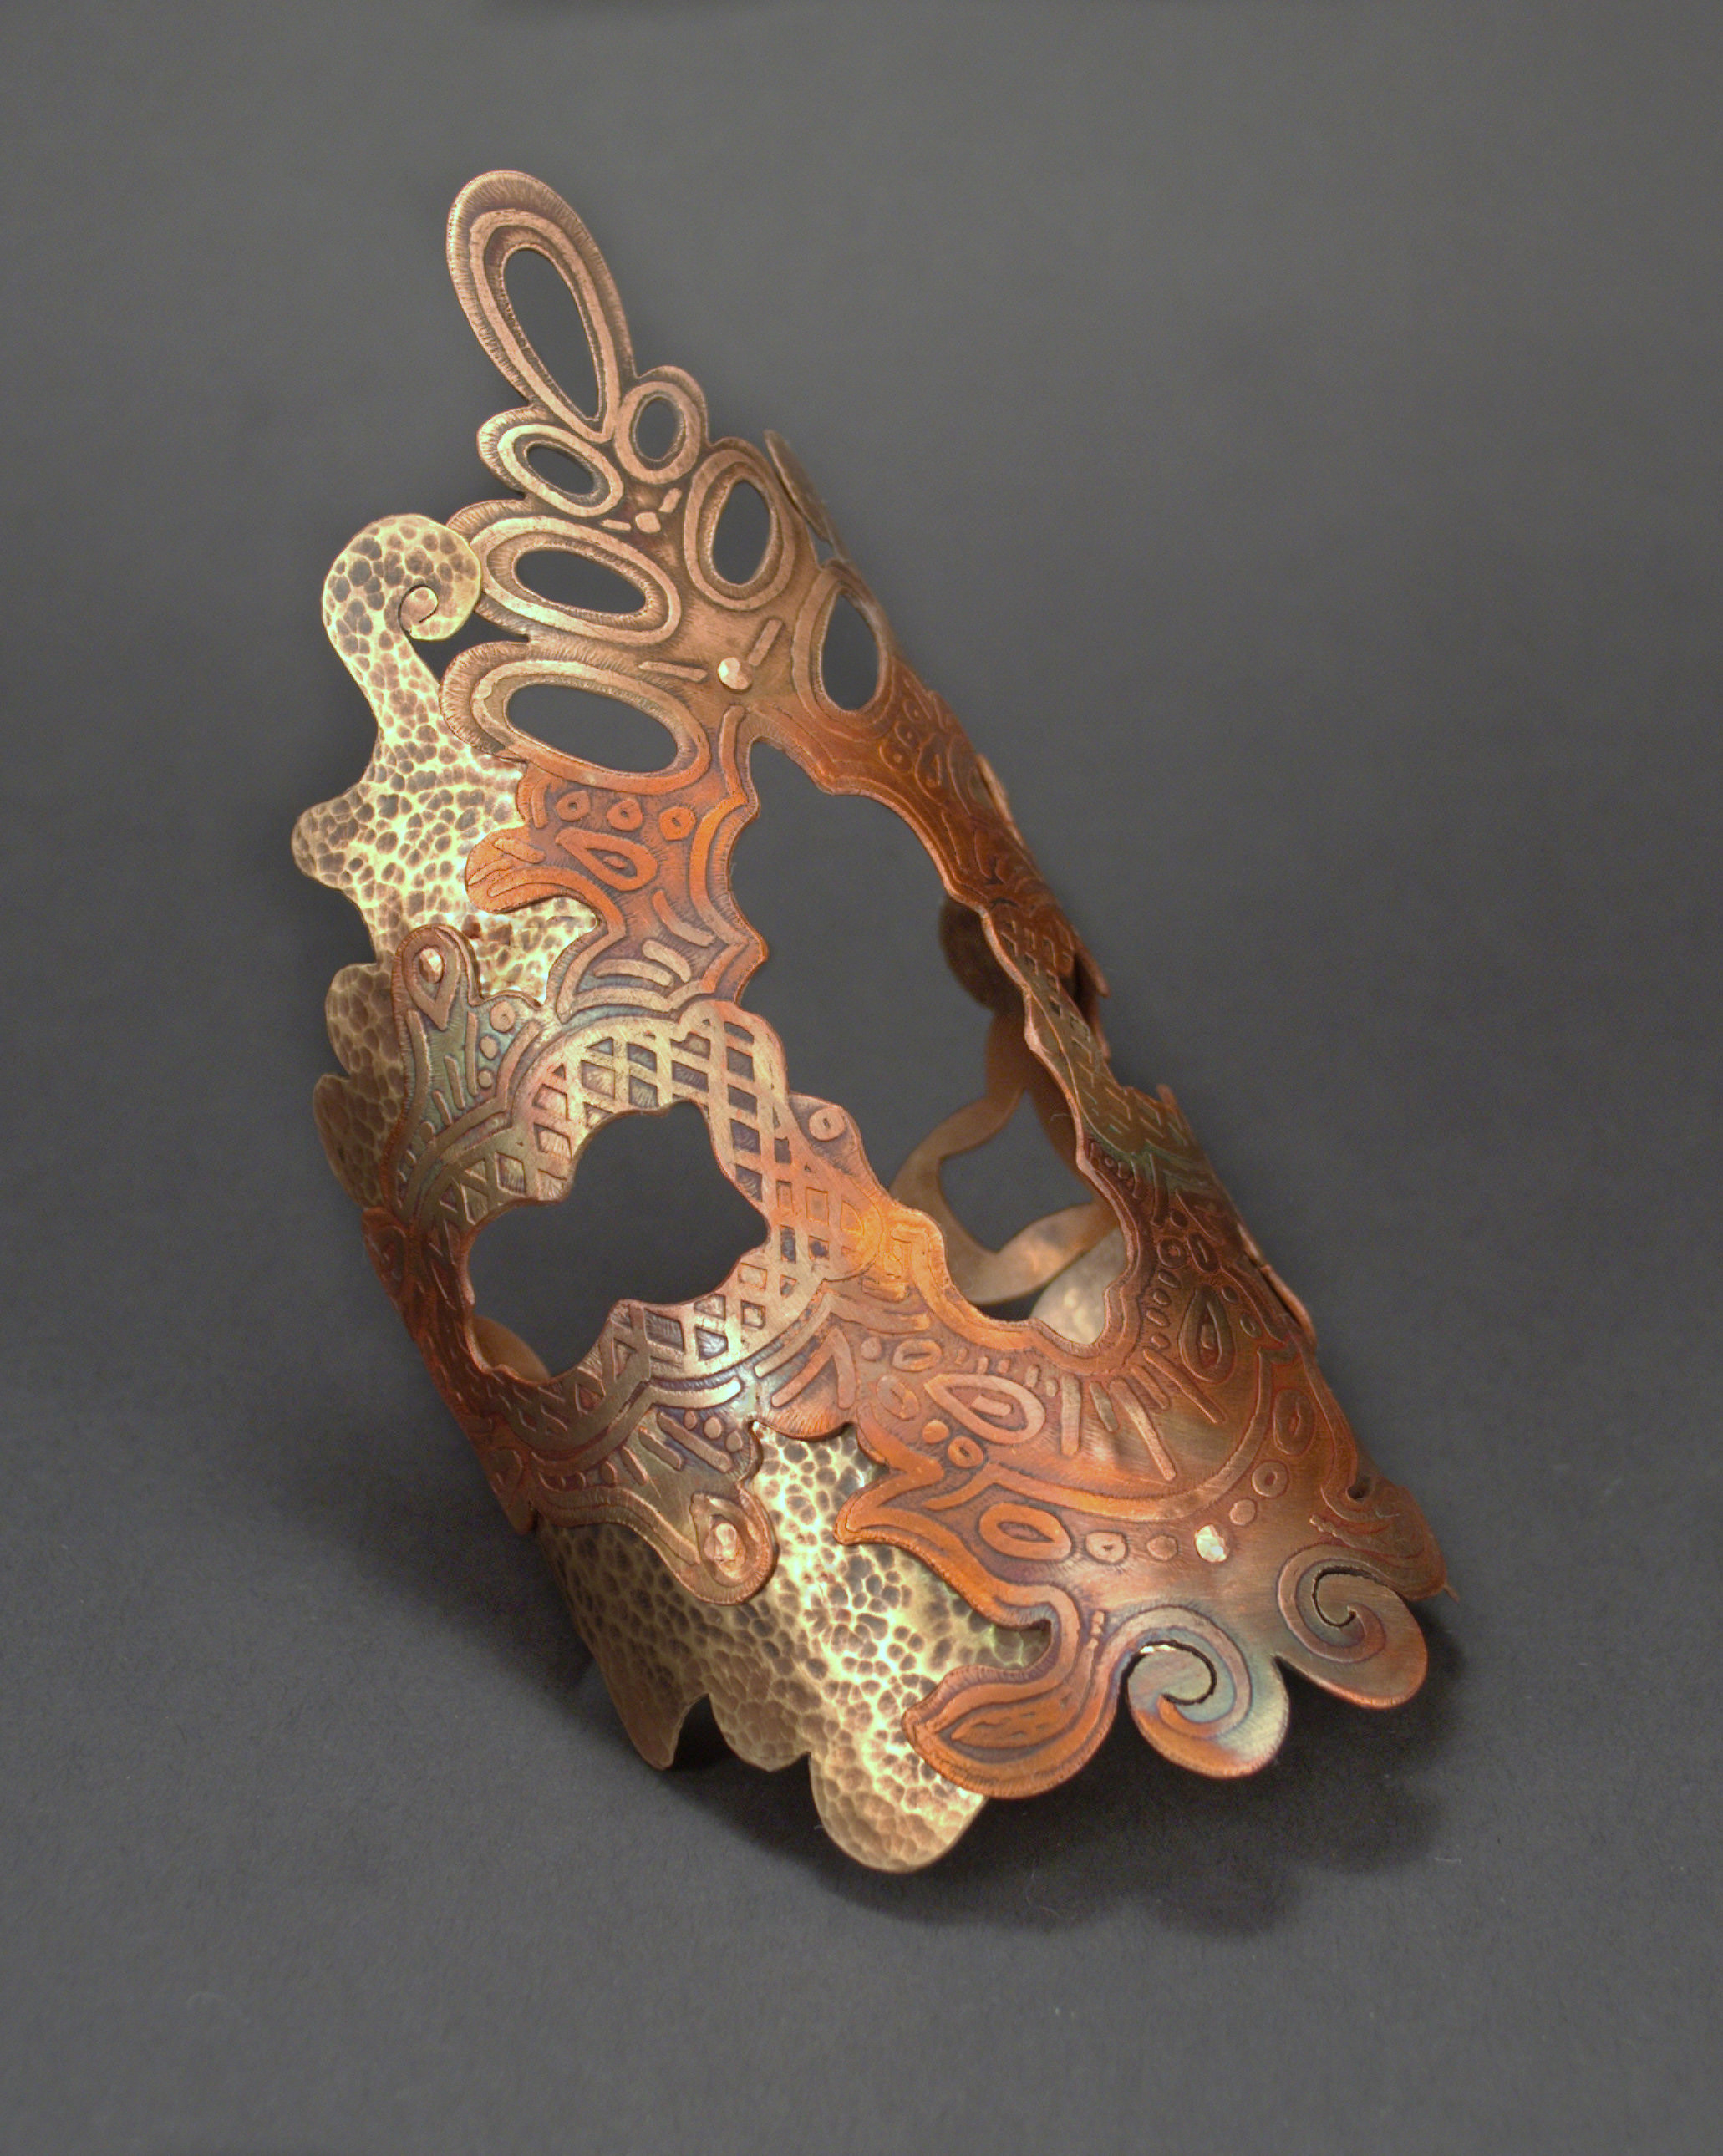 Dawna_Gillespie_copper_brass_cuff_Aberration-001